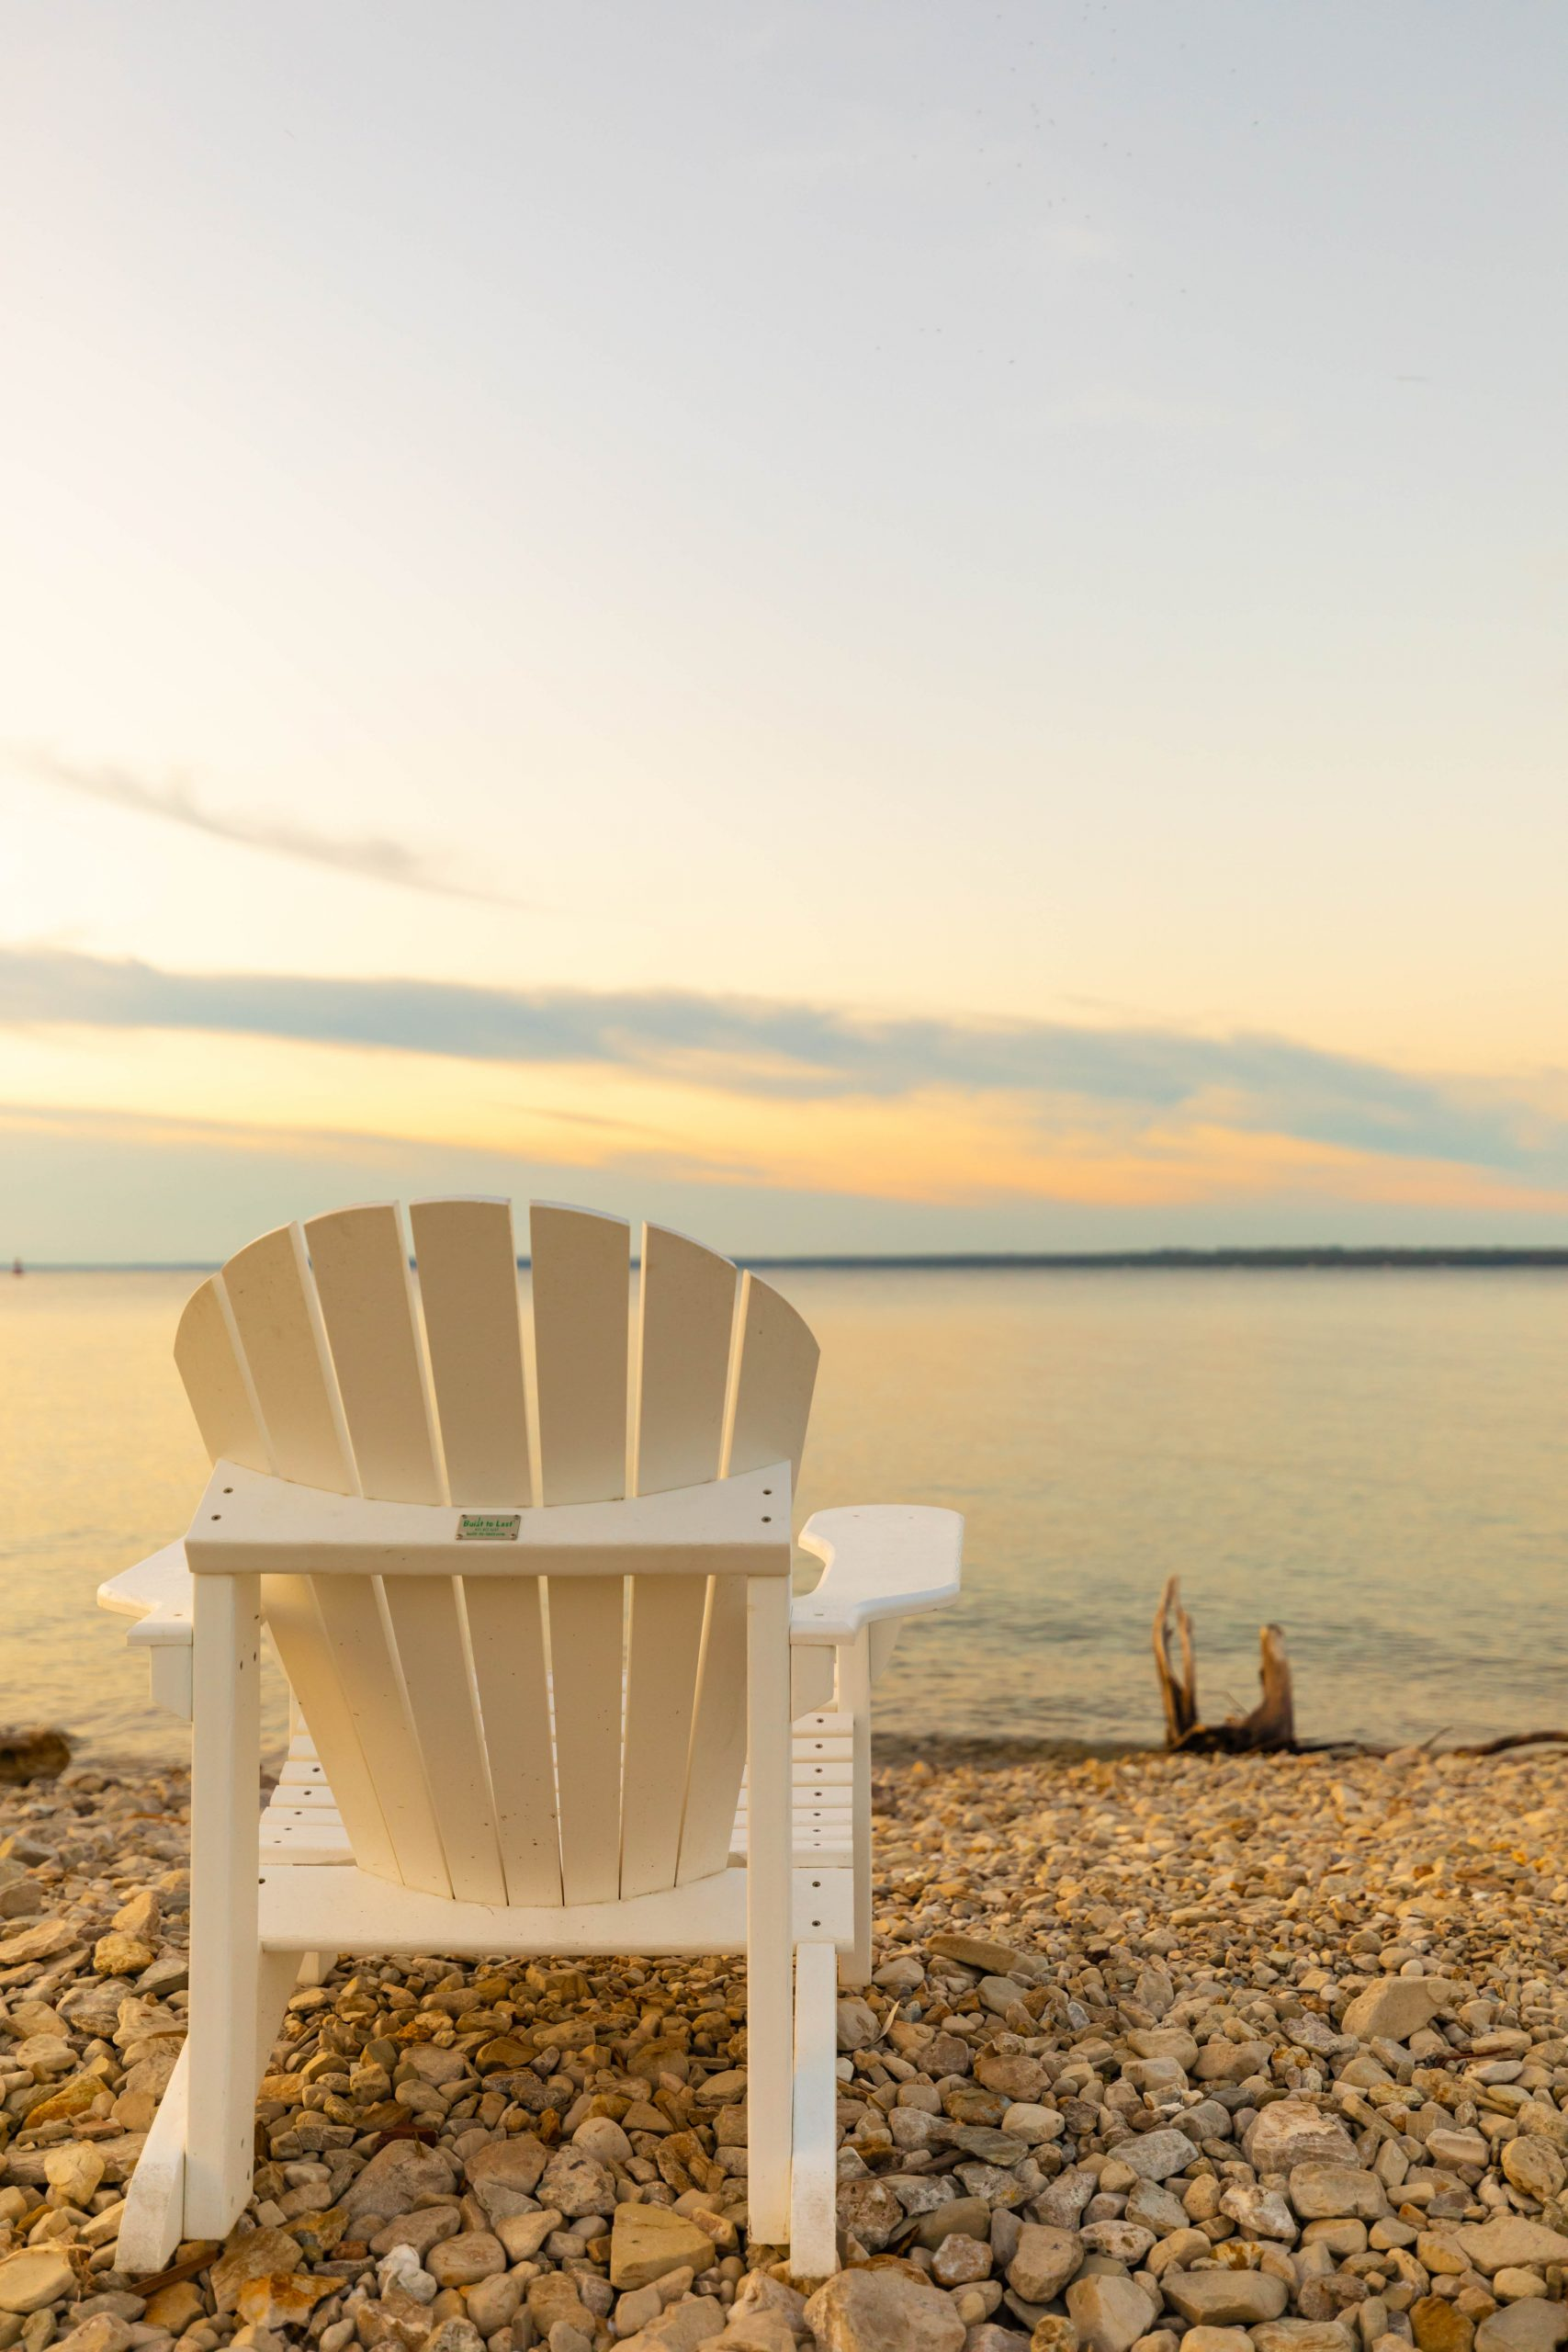 Luxury Spas of the World Lakeside Salon and Spa on Mackinac Island Michigan at Mission Point Resort Lakeside Relaxation by @AnnieFairfax